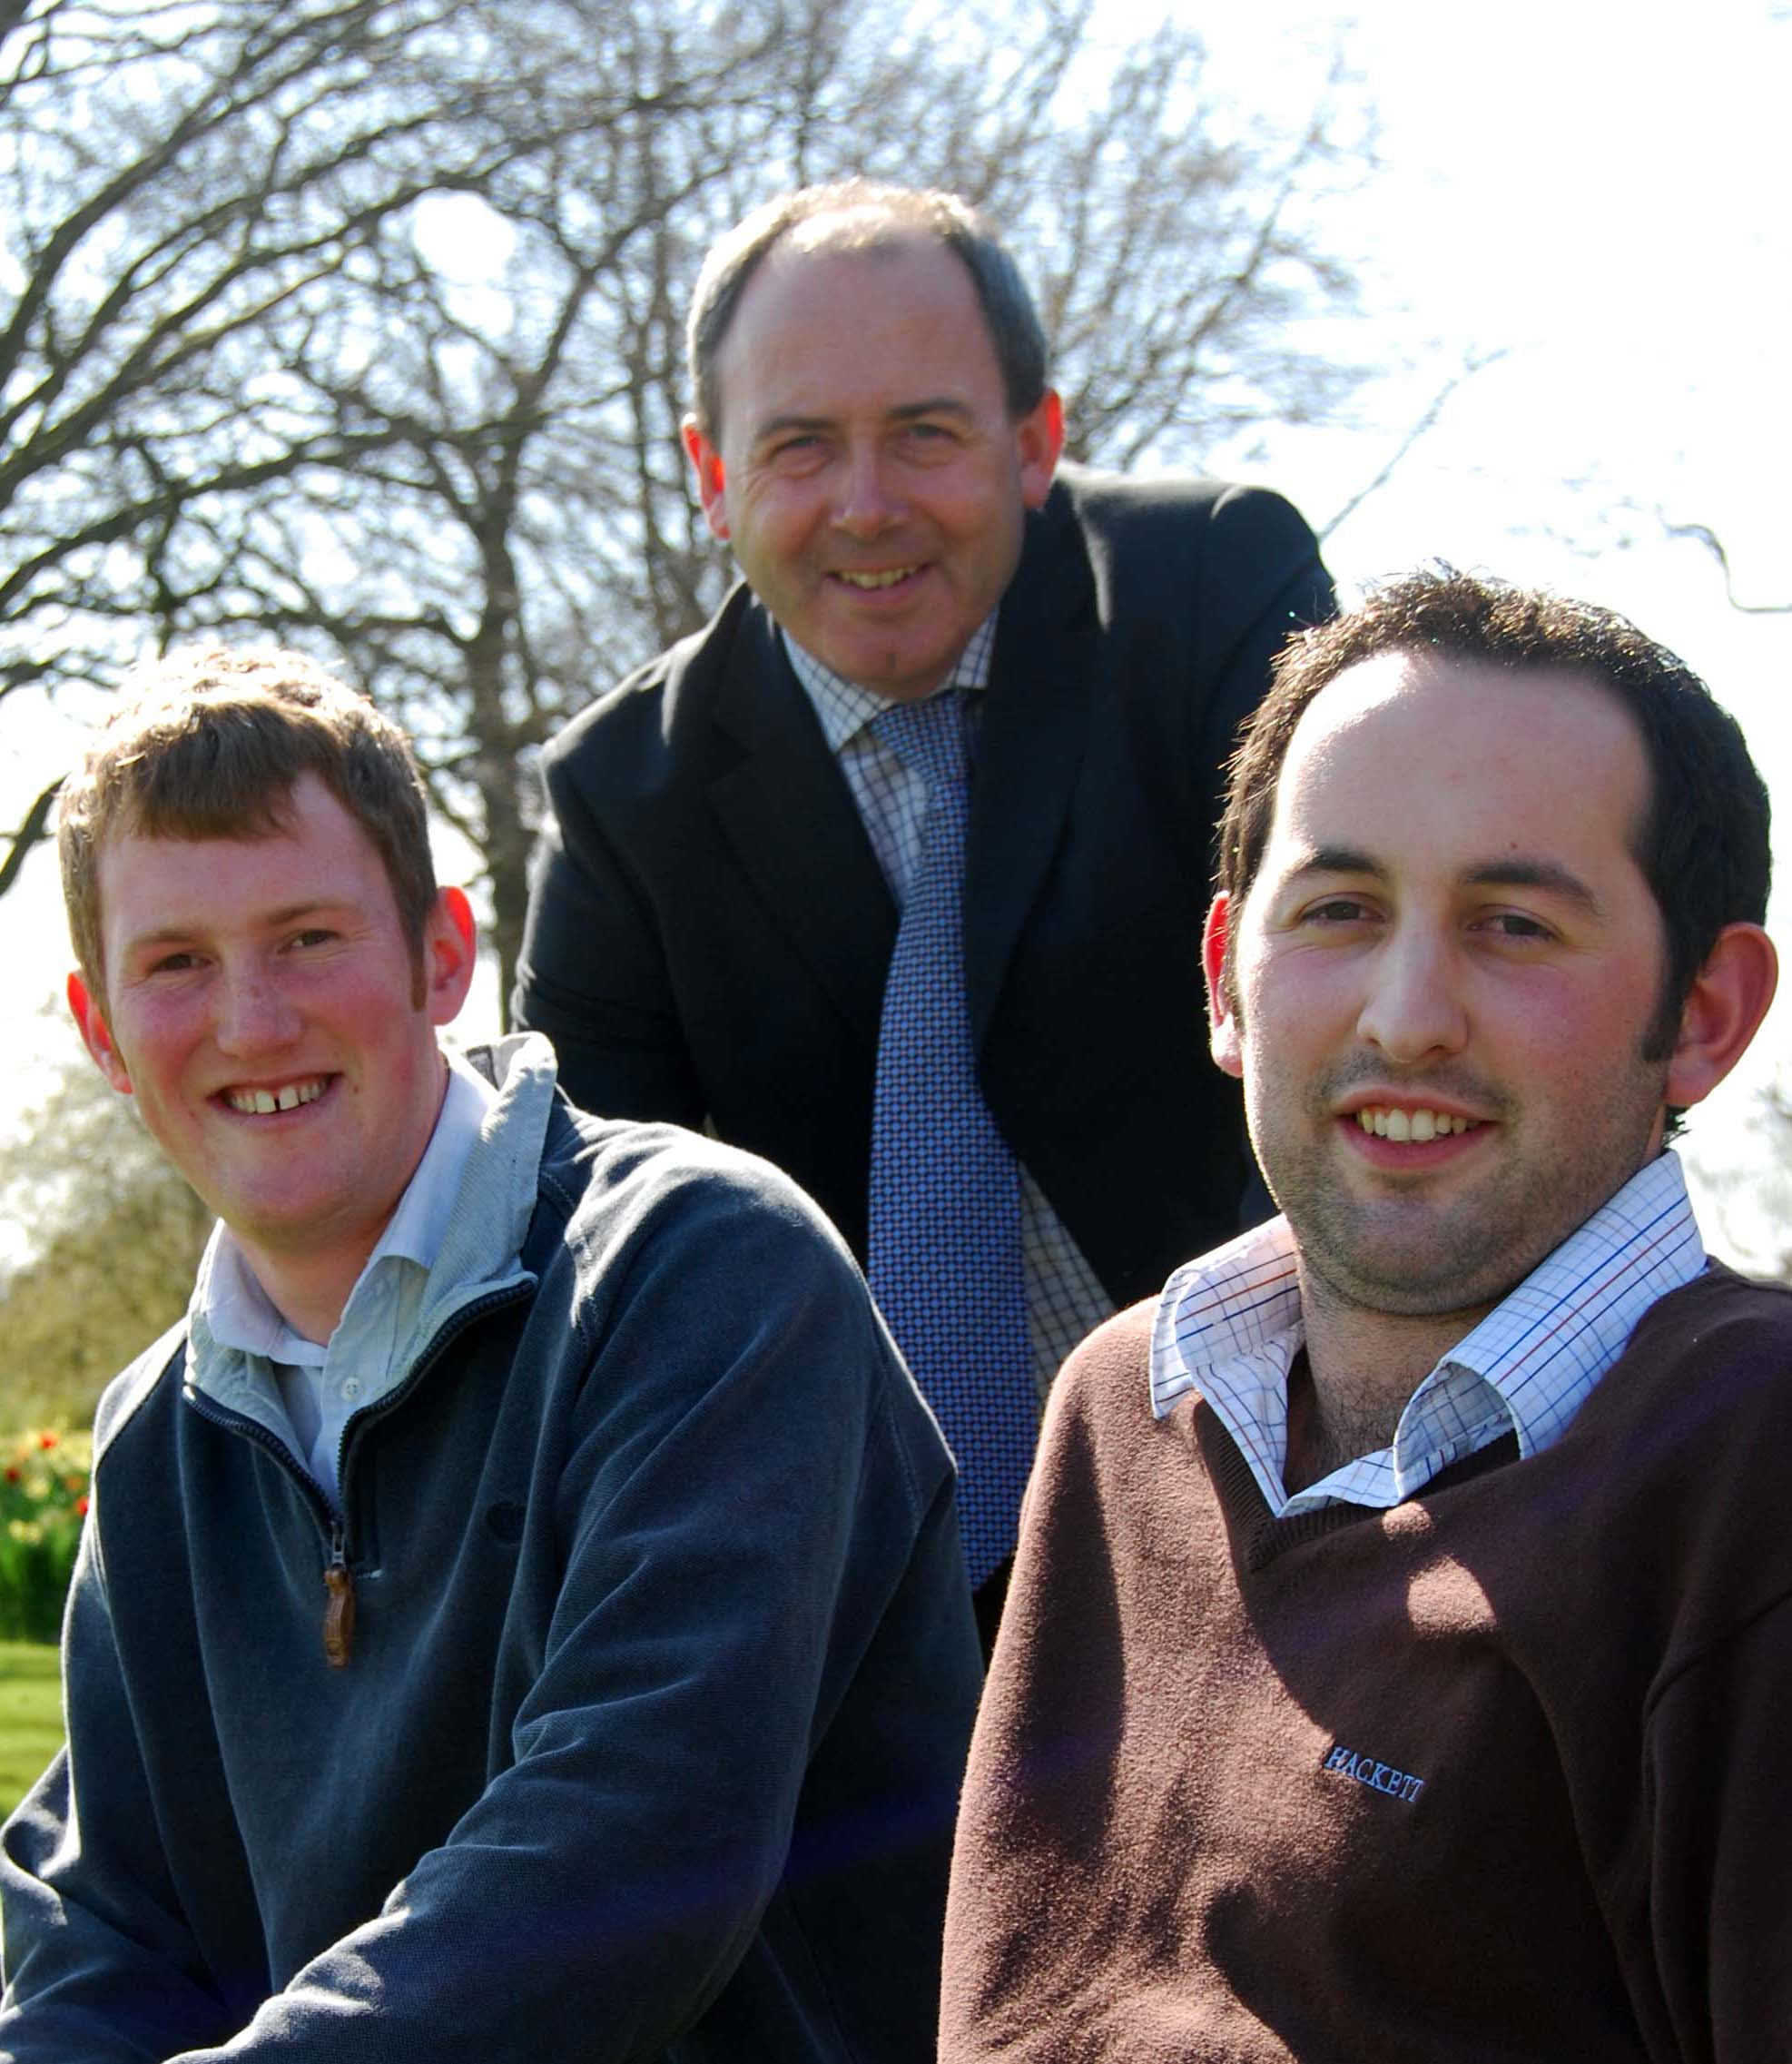 Left to right, Matthew Kingdon, Tony Asson and Adam Brown